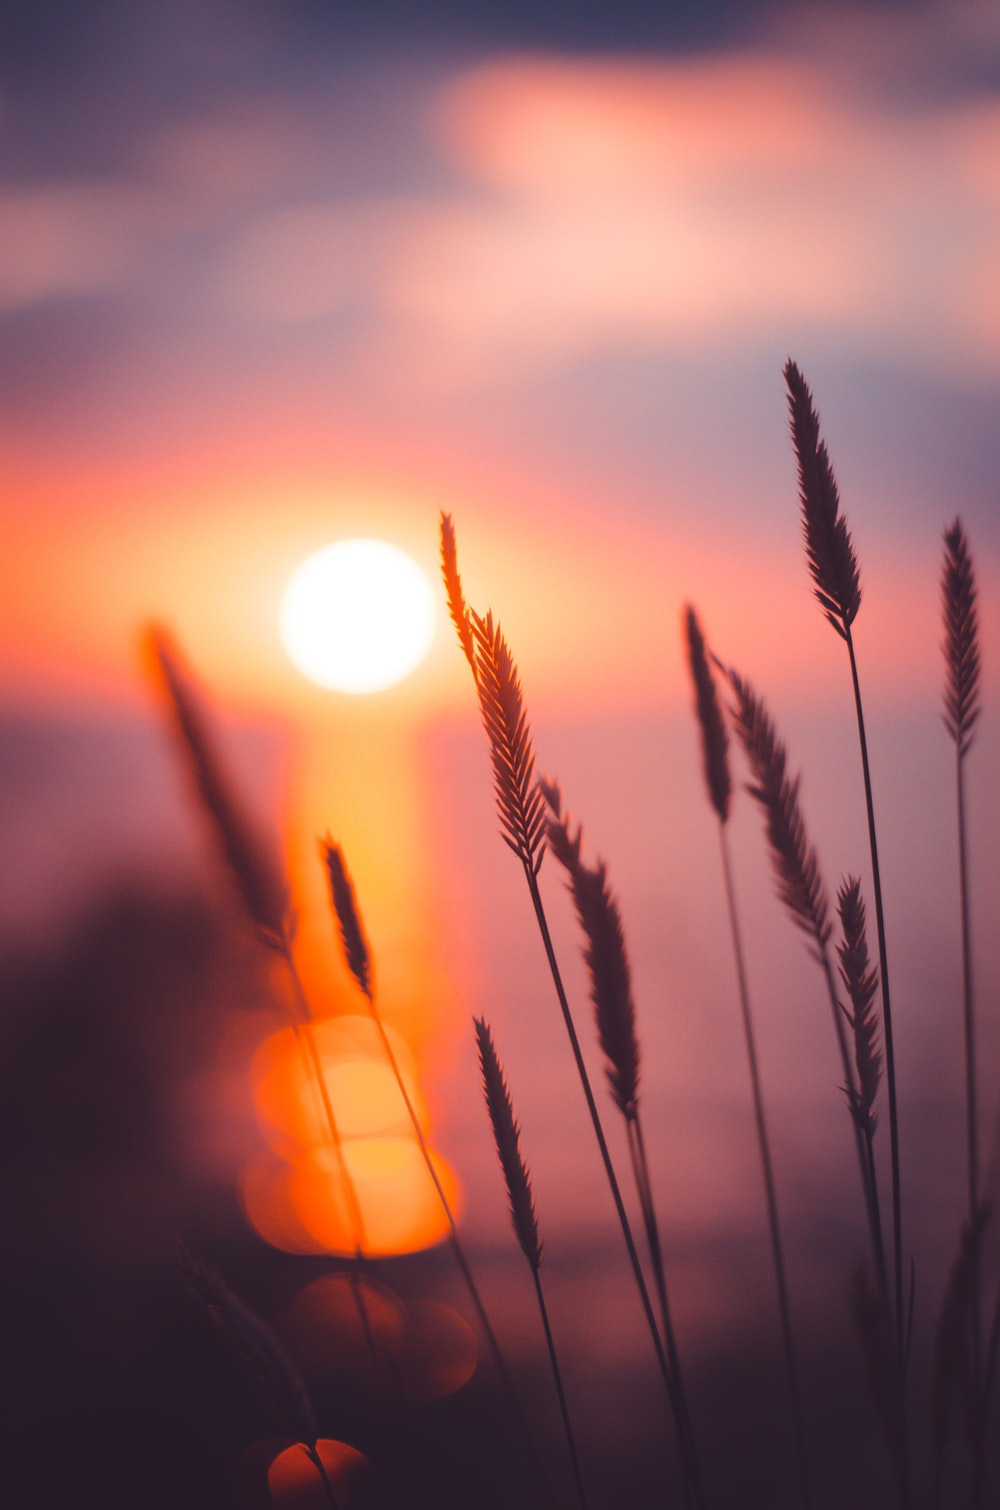 wheat grain in focus photography during sunset